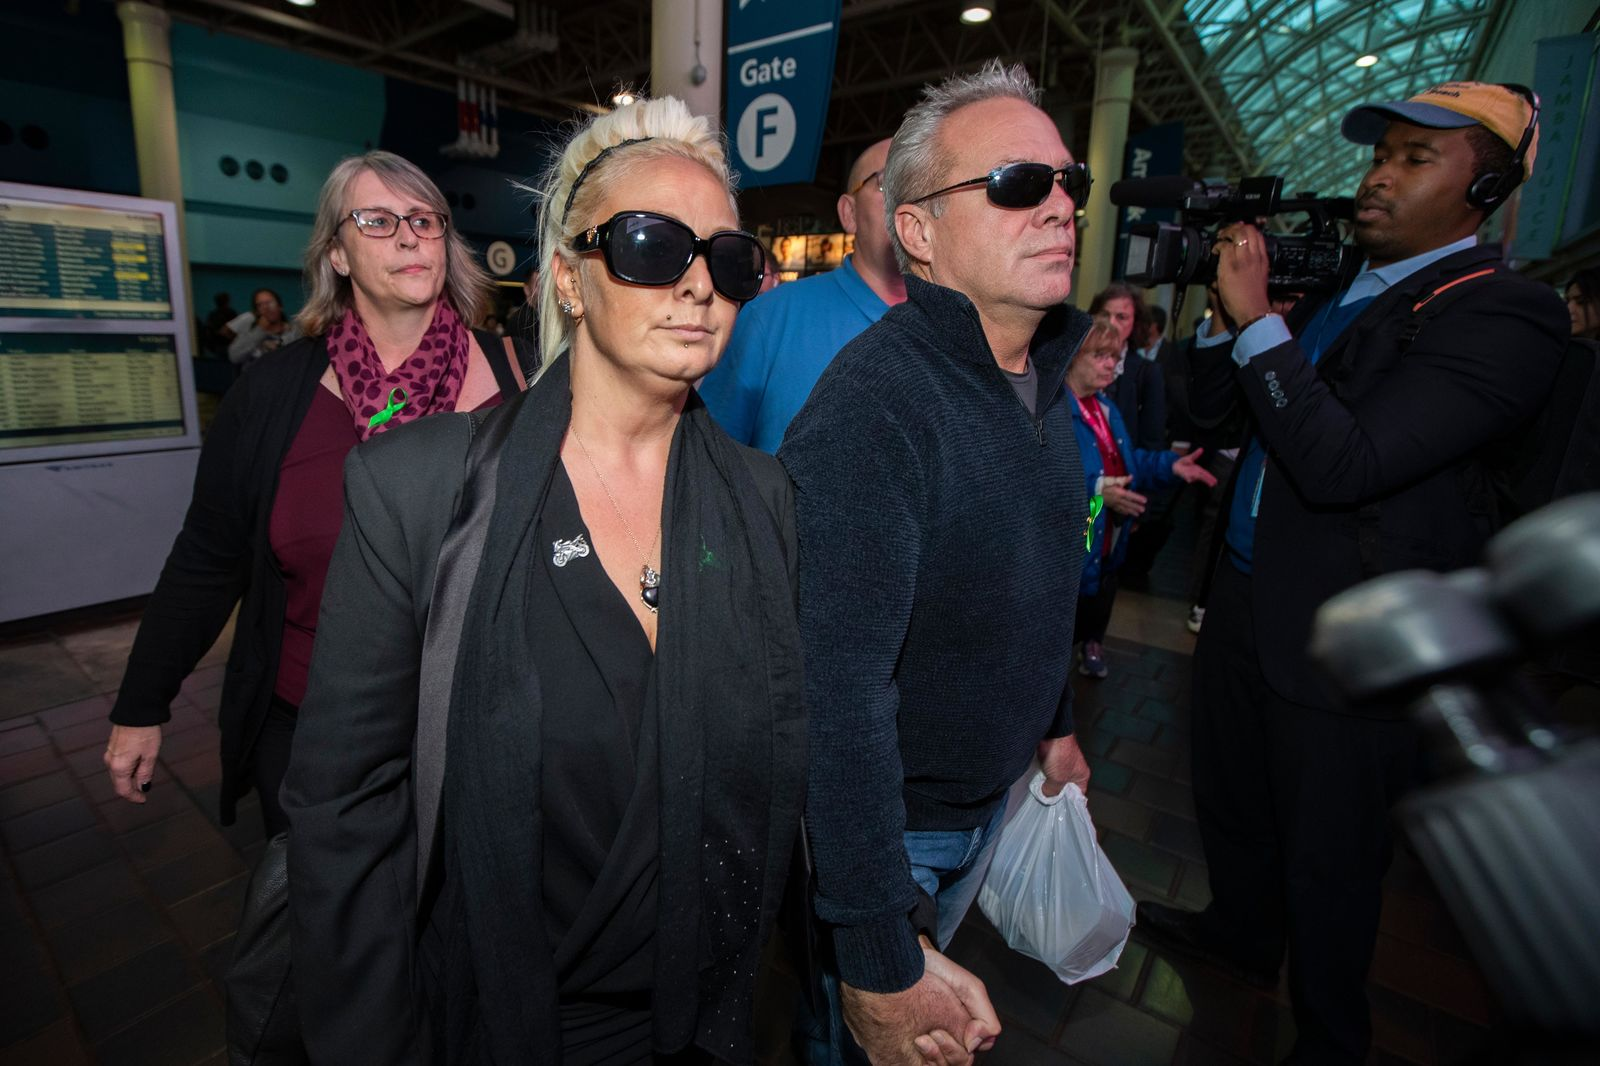 Charlotte Charles, left, mother of British teenager Harry Dunn, and her husband Bruce Charles, arrive at Union Station in Washington, Tuesday, Oct. 15, 2019. (AP Photo/Manuel Balce Ceneta)